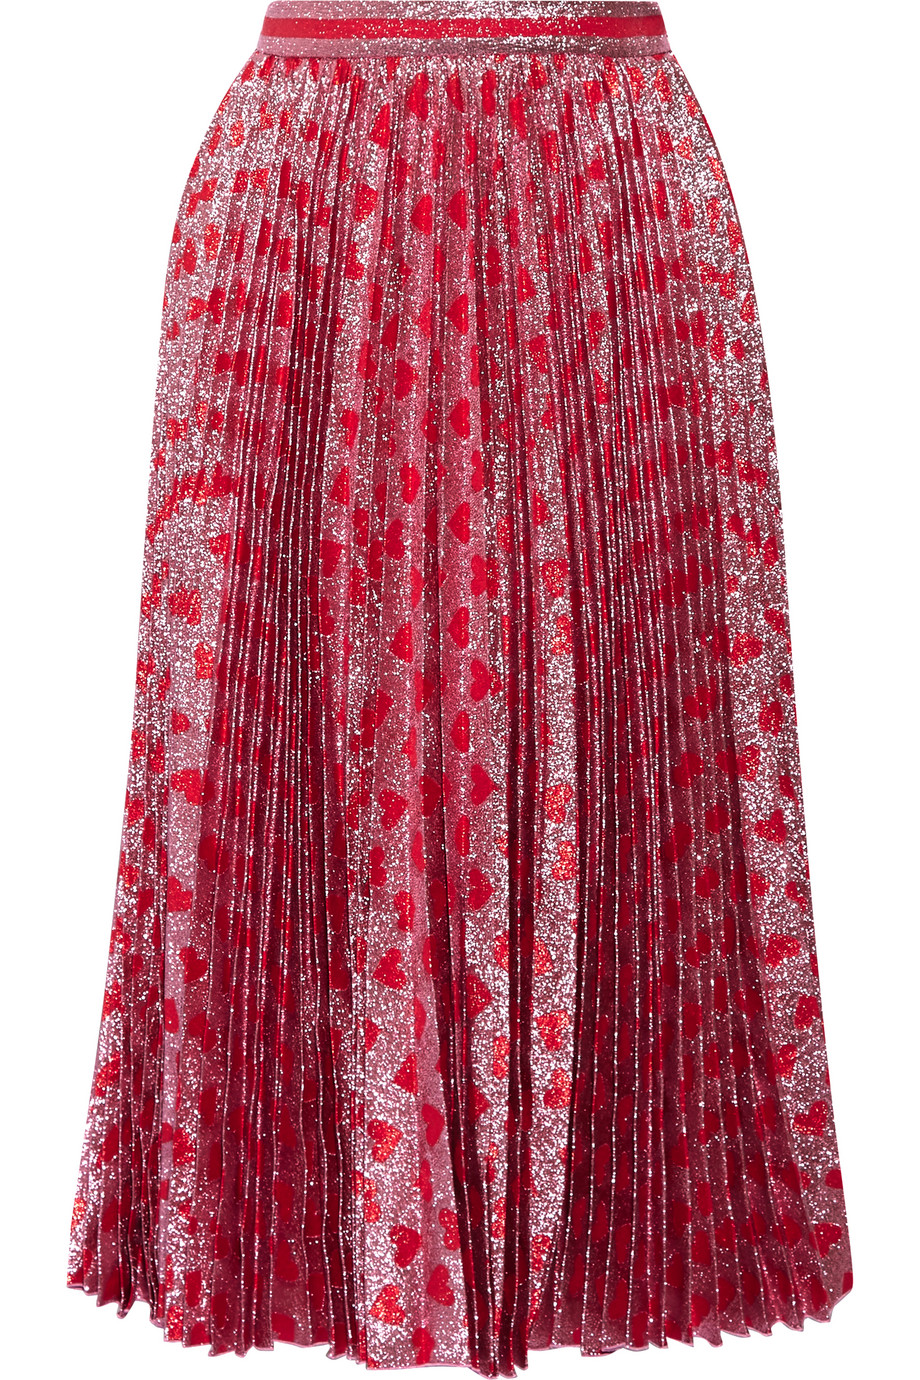 Gucci Pleated Printed Lamé Skirt, Red/Pink, Women's, Size: 44